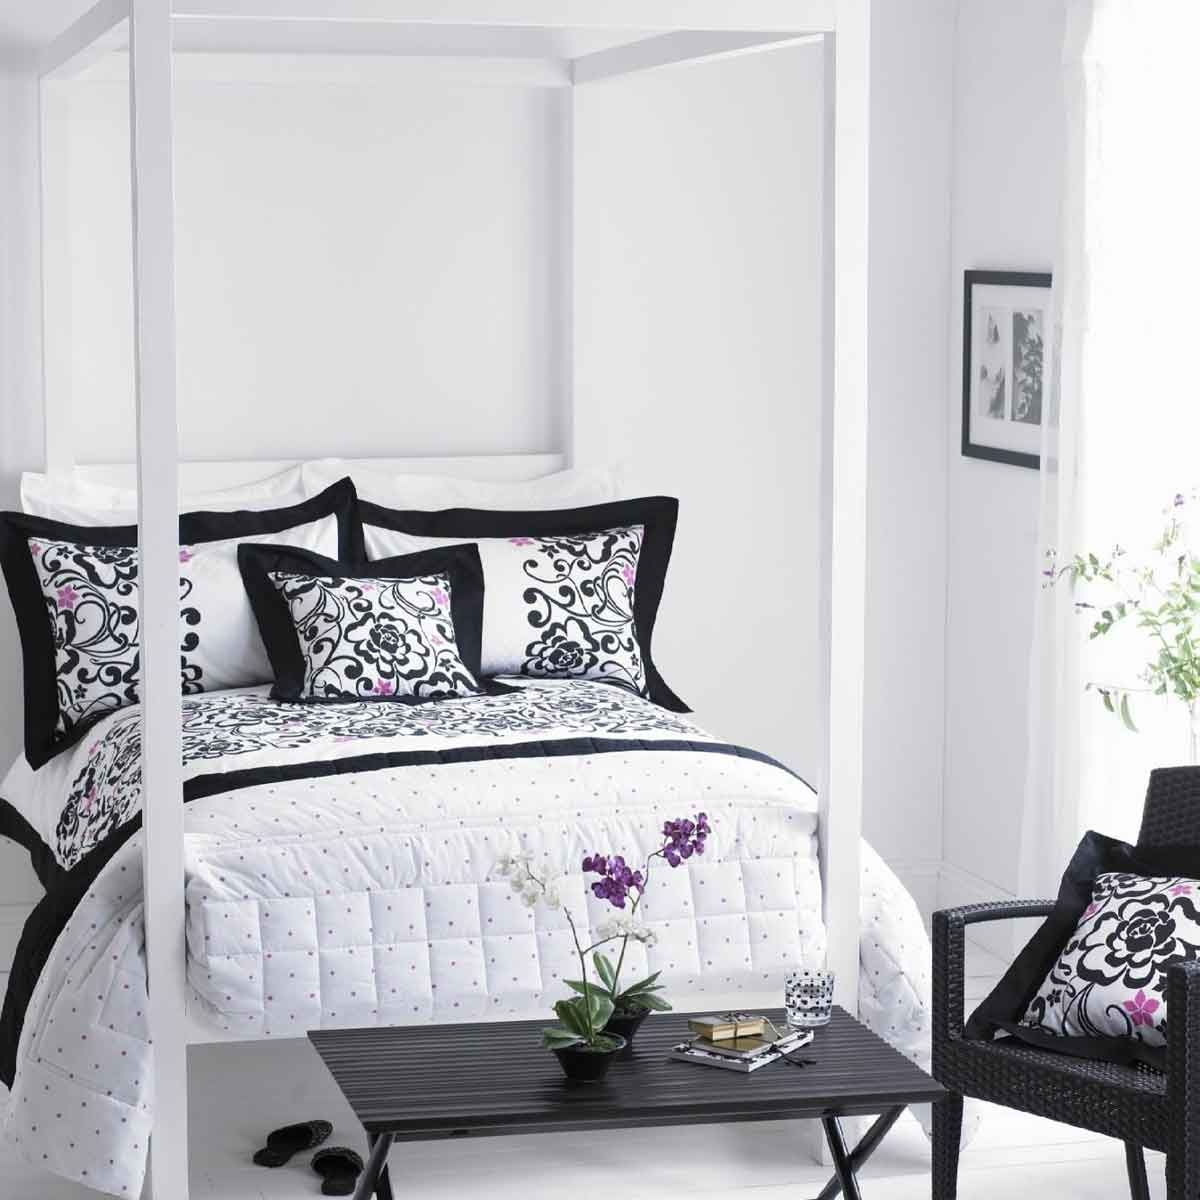 fascinating black and white bedroom set with floral accent decor